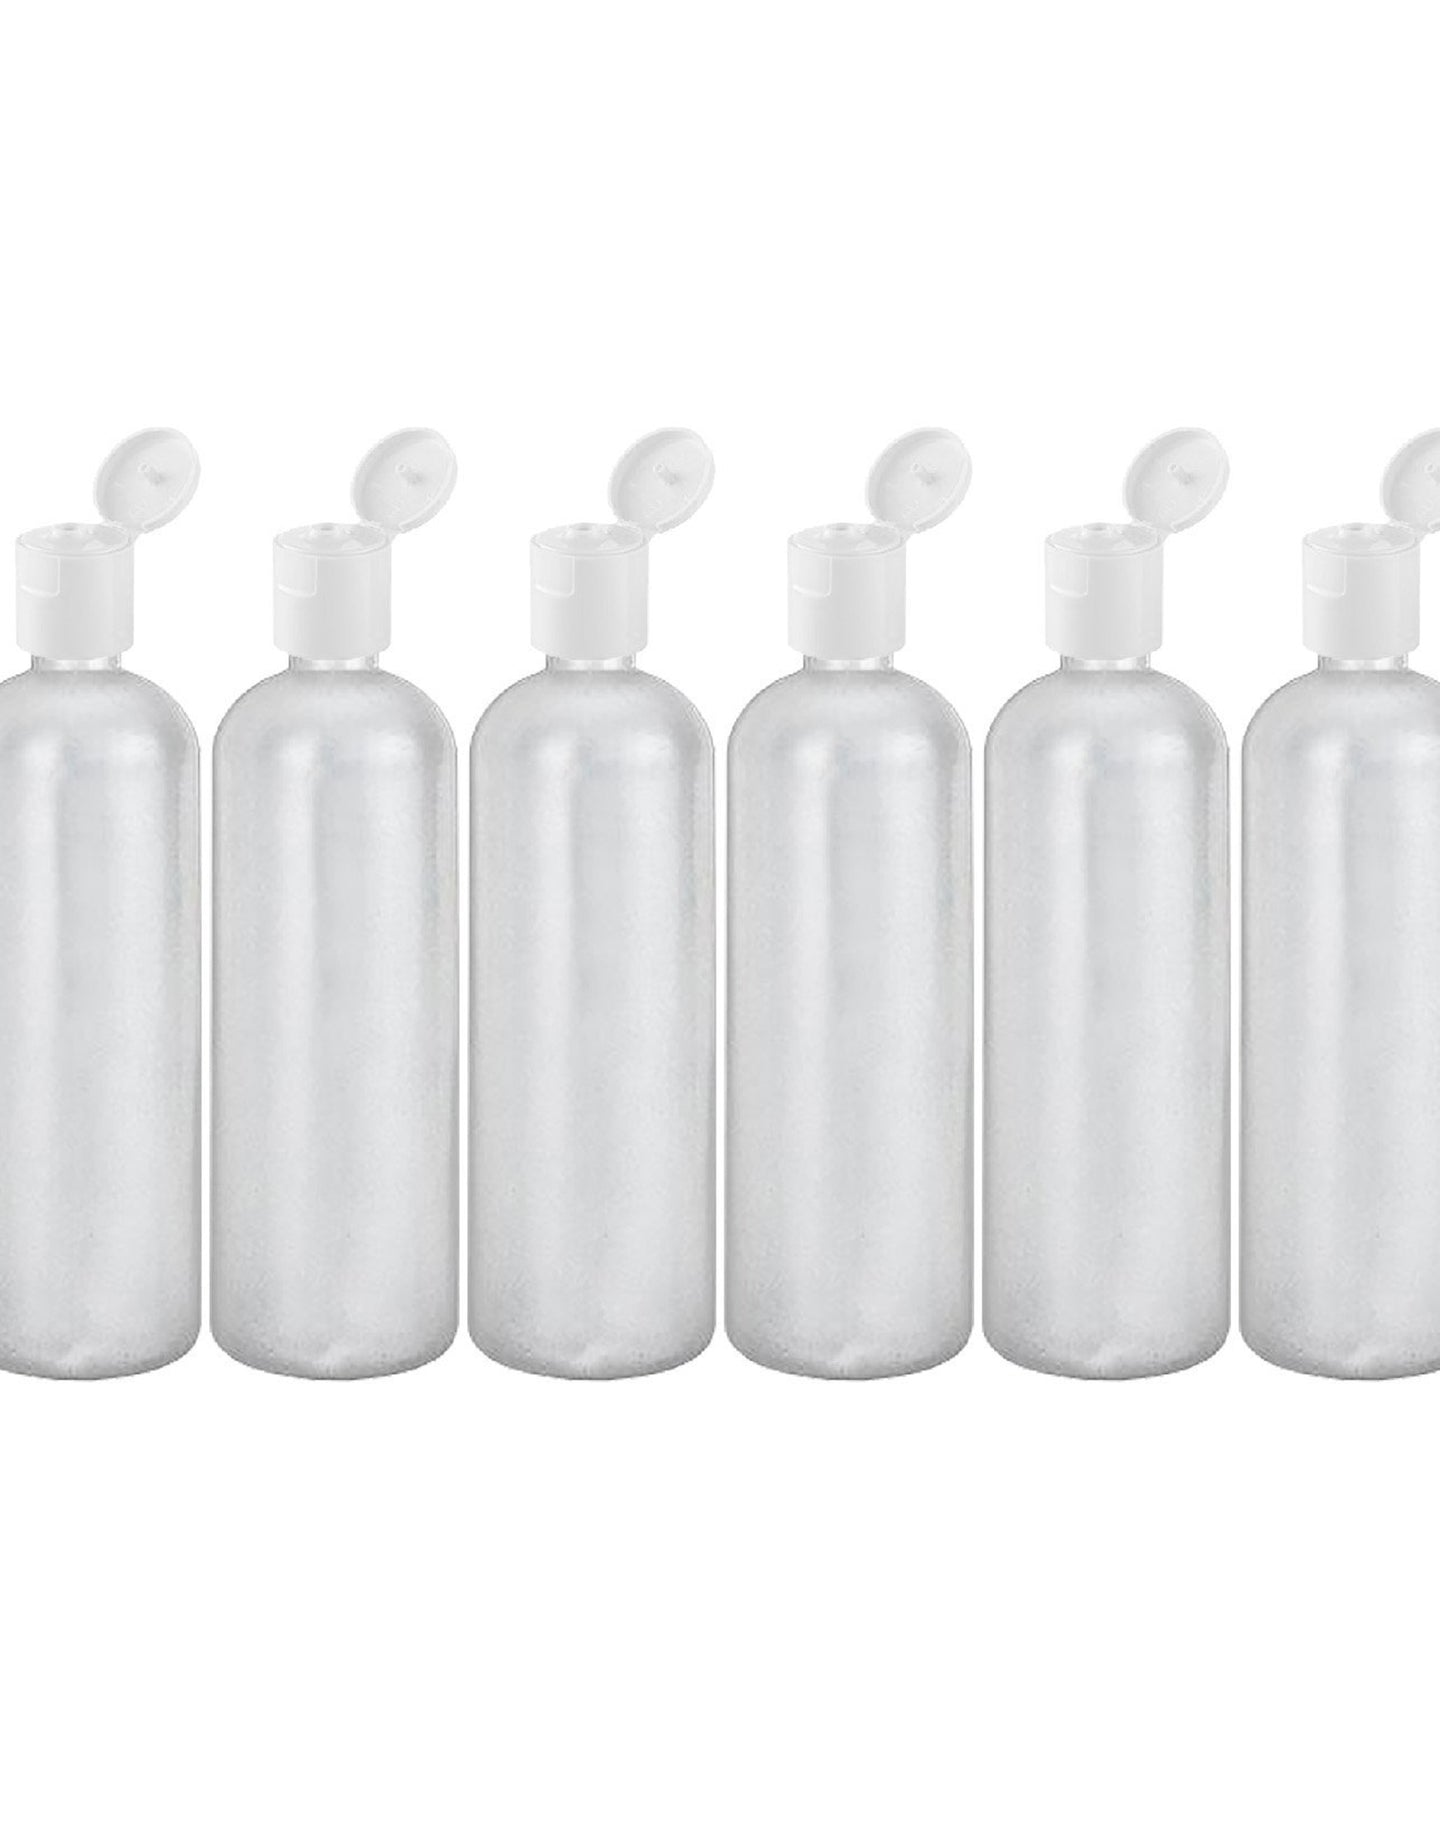 MoYo Natural Labs 32 oz Refillable Bottles, Empty Travel Containers with Flip Caps, BPA Free HDPE Plastic Squeezable Toiletry/Cosmetics Bottle (Pack of 6, HDPE Translucent White)